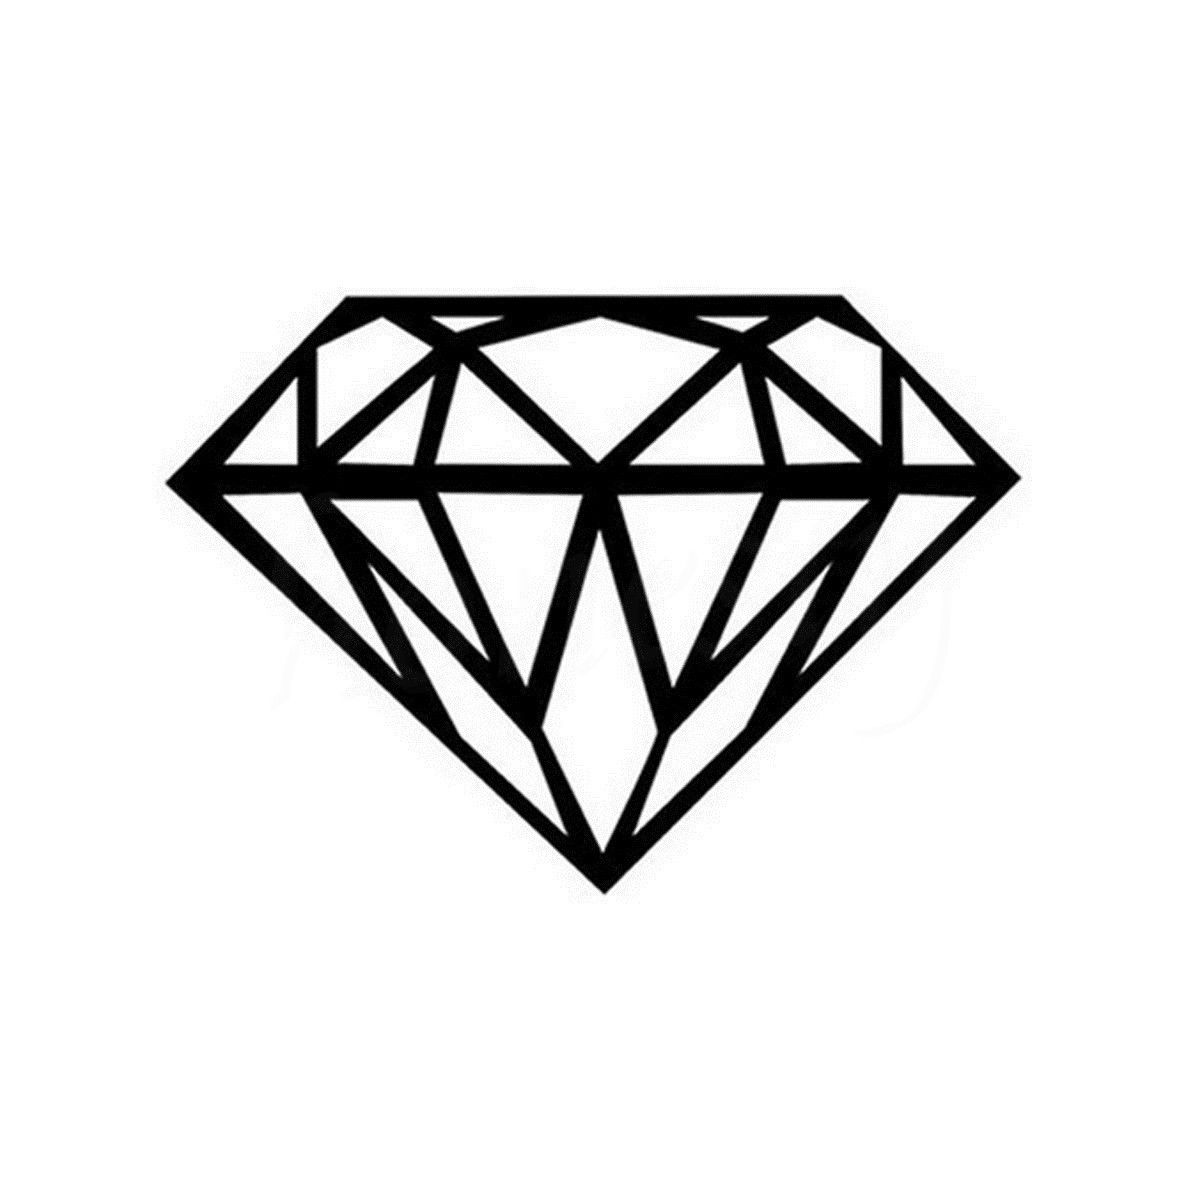 Diamond Wall Home Door Window Glass Car Sticker Laptop